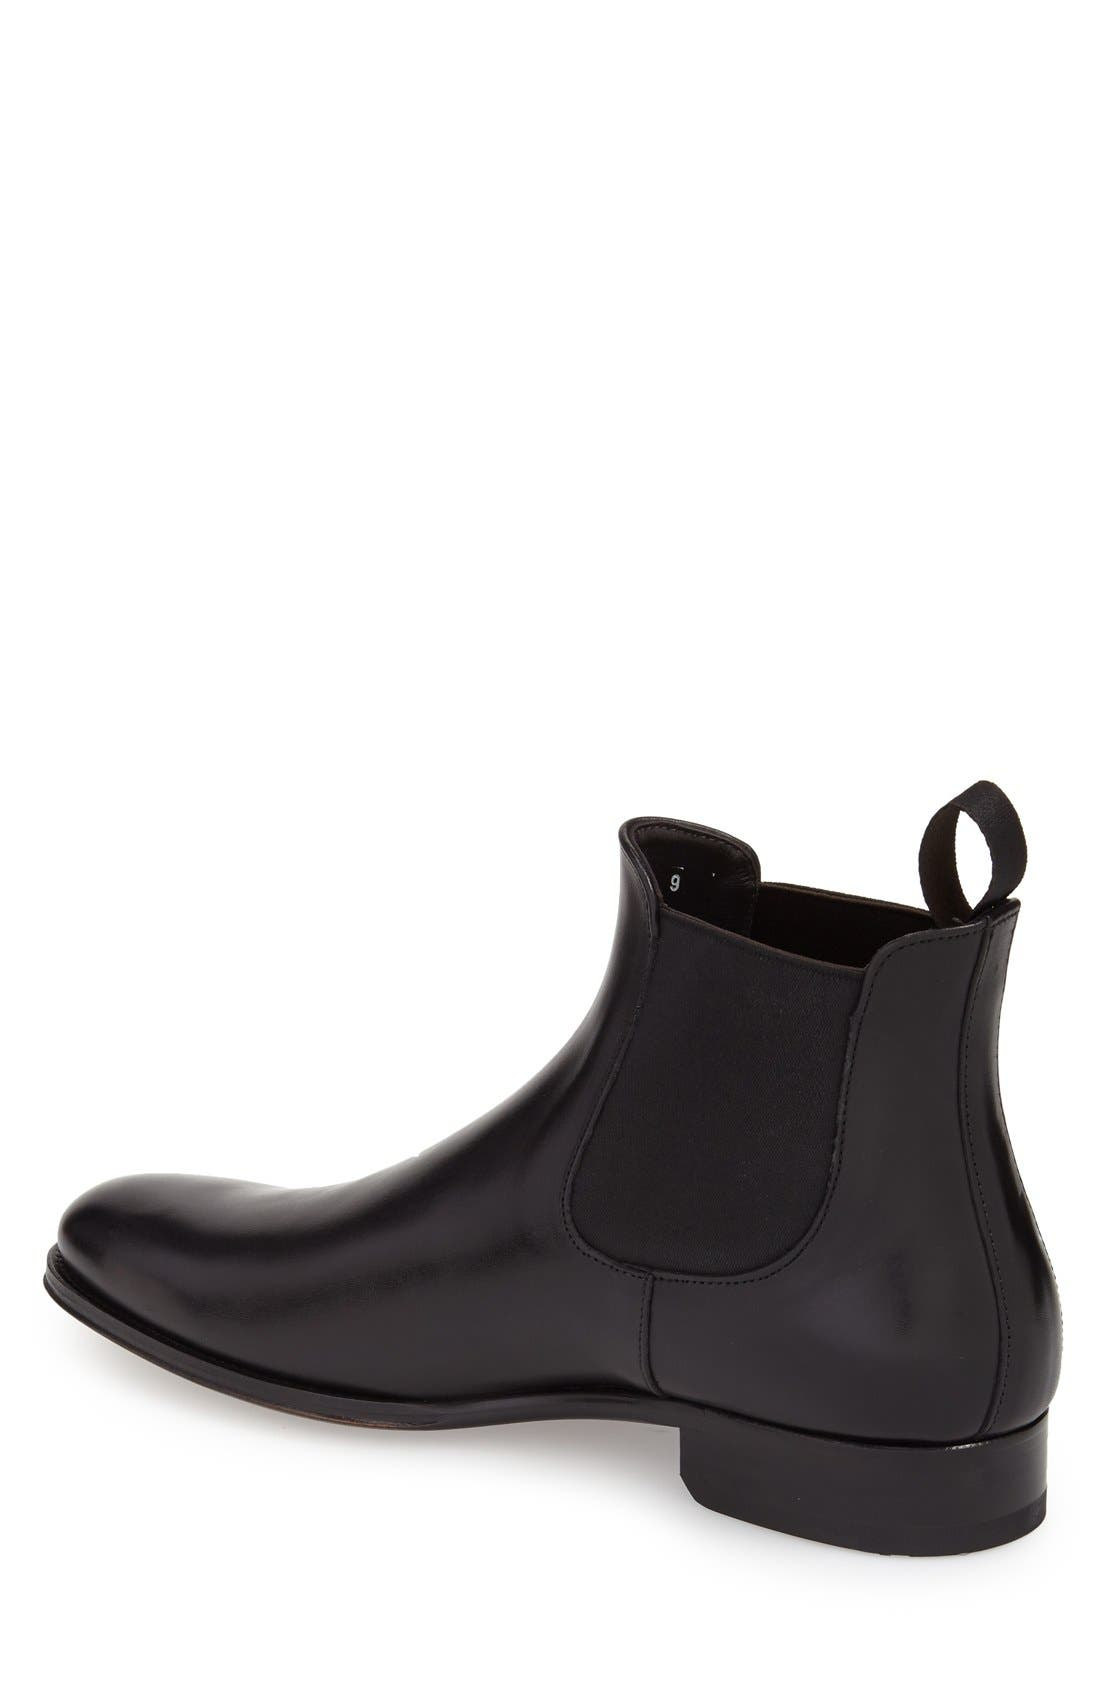 TO BOOT NEW YORK, Toby Chelsea Boot, Alternate thumbnail 2, color, BLACK LEATHER